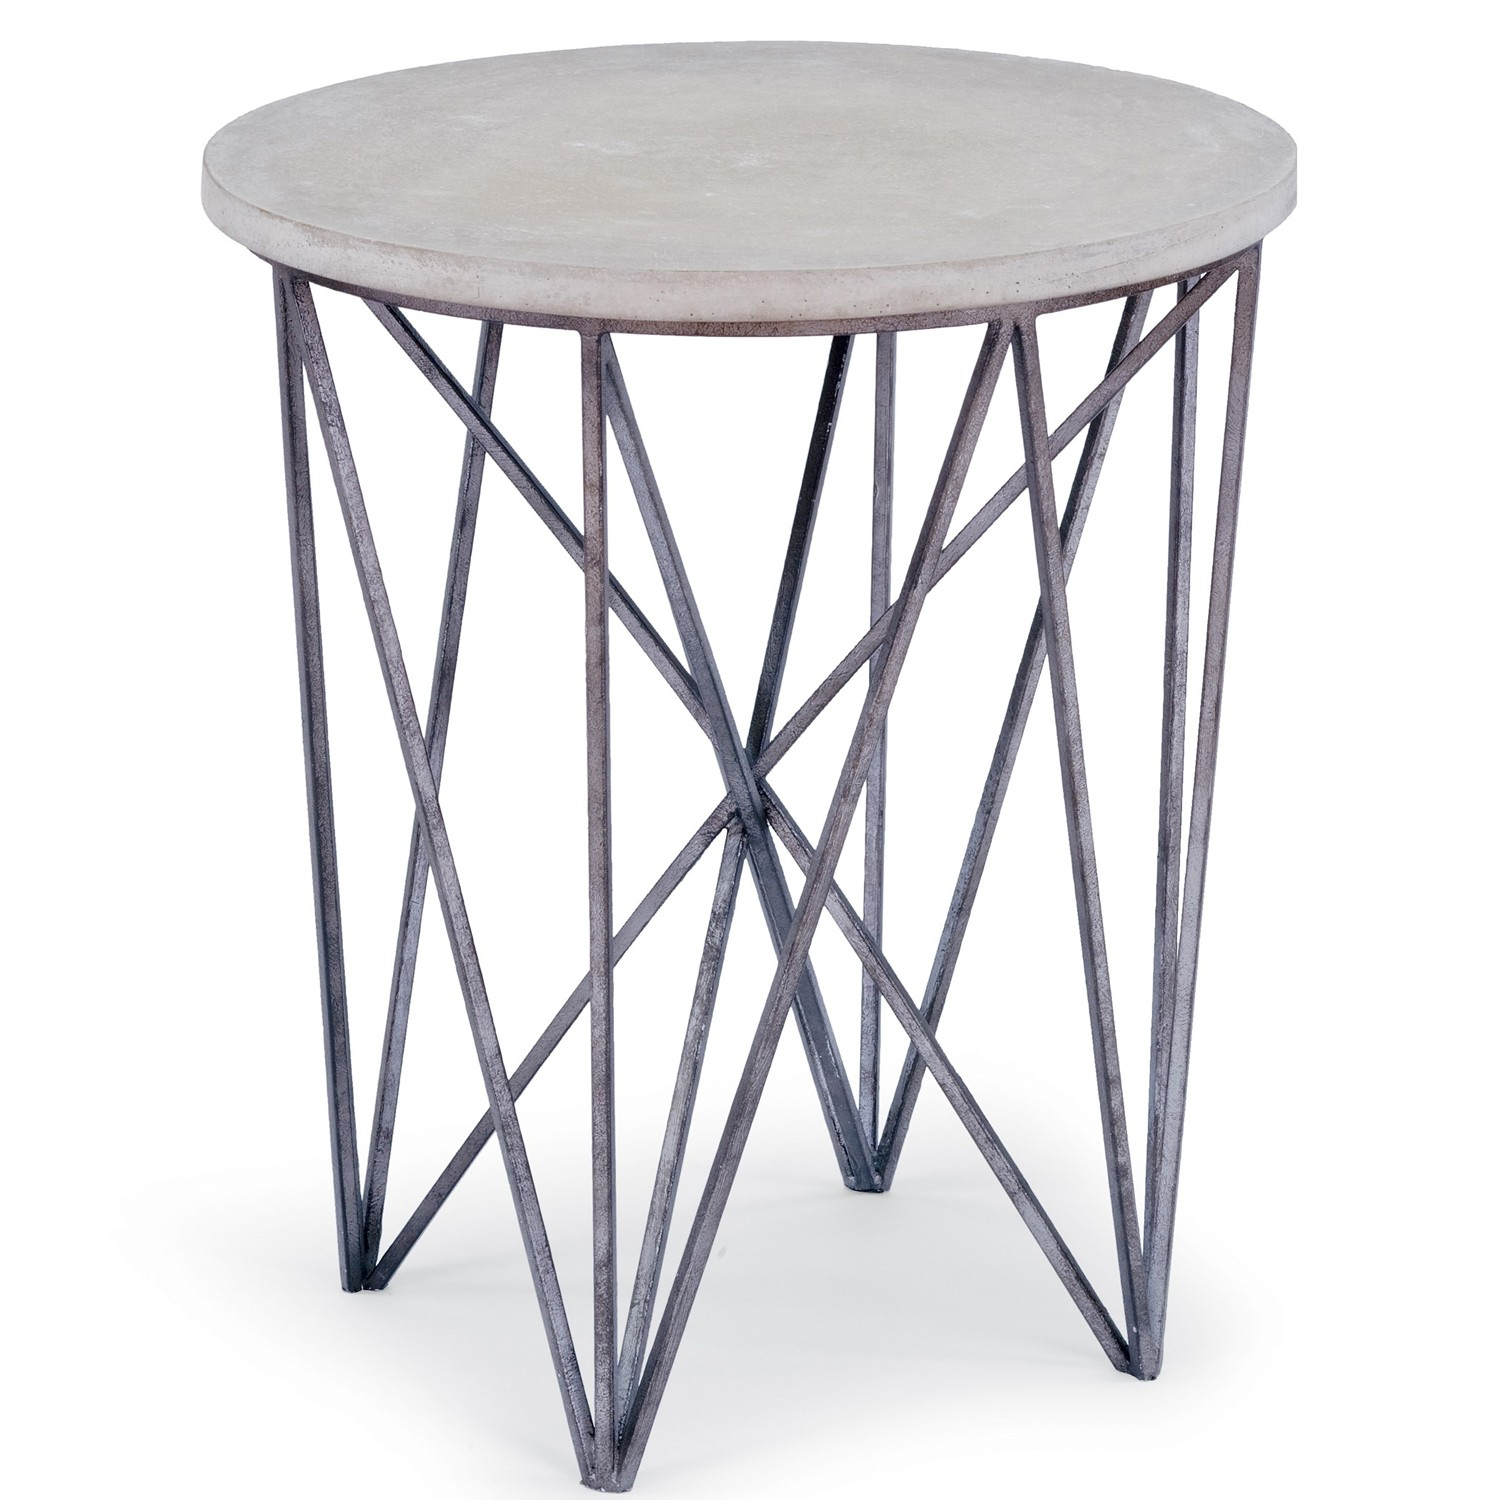 regina andrew cecil accent table black iron candelabra inc side pedestal target standing lamp mirrored vintage trestle round outdoor furniture thin entrance room essentials